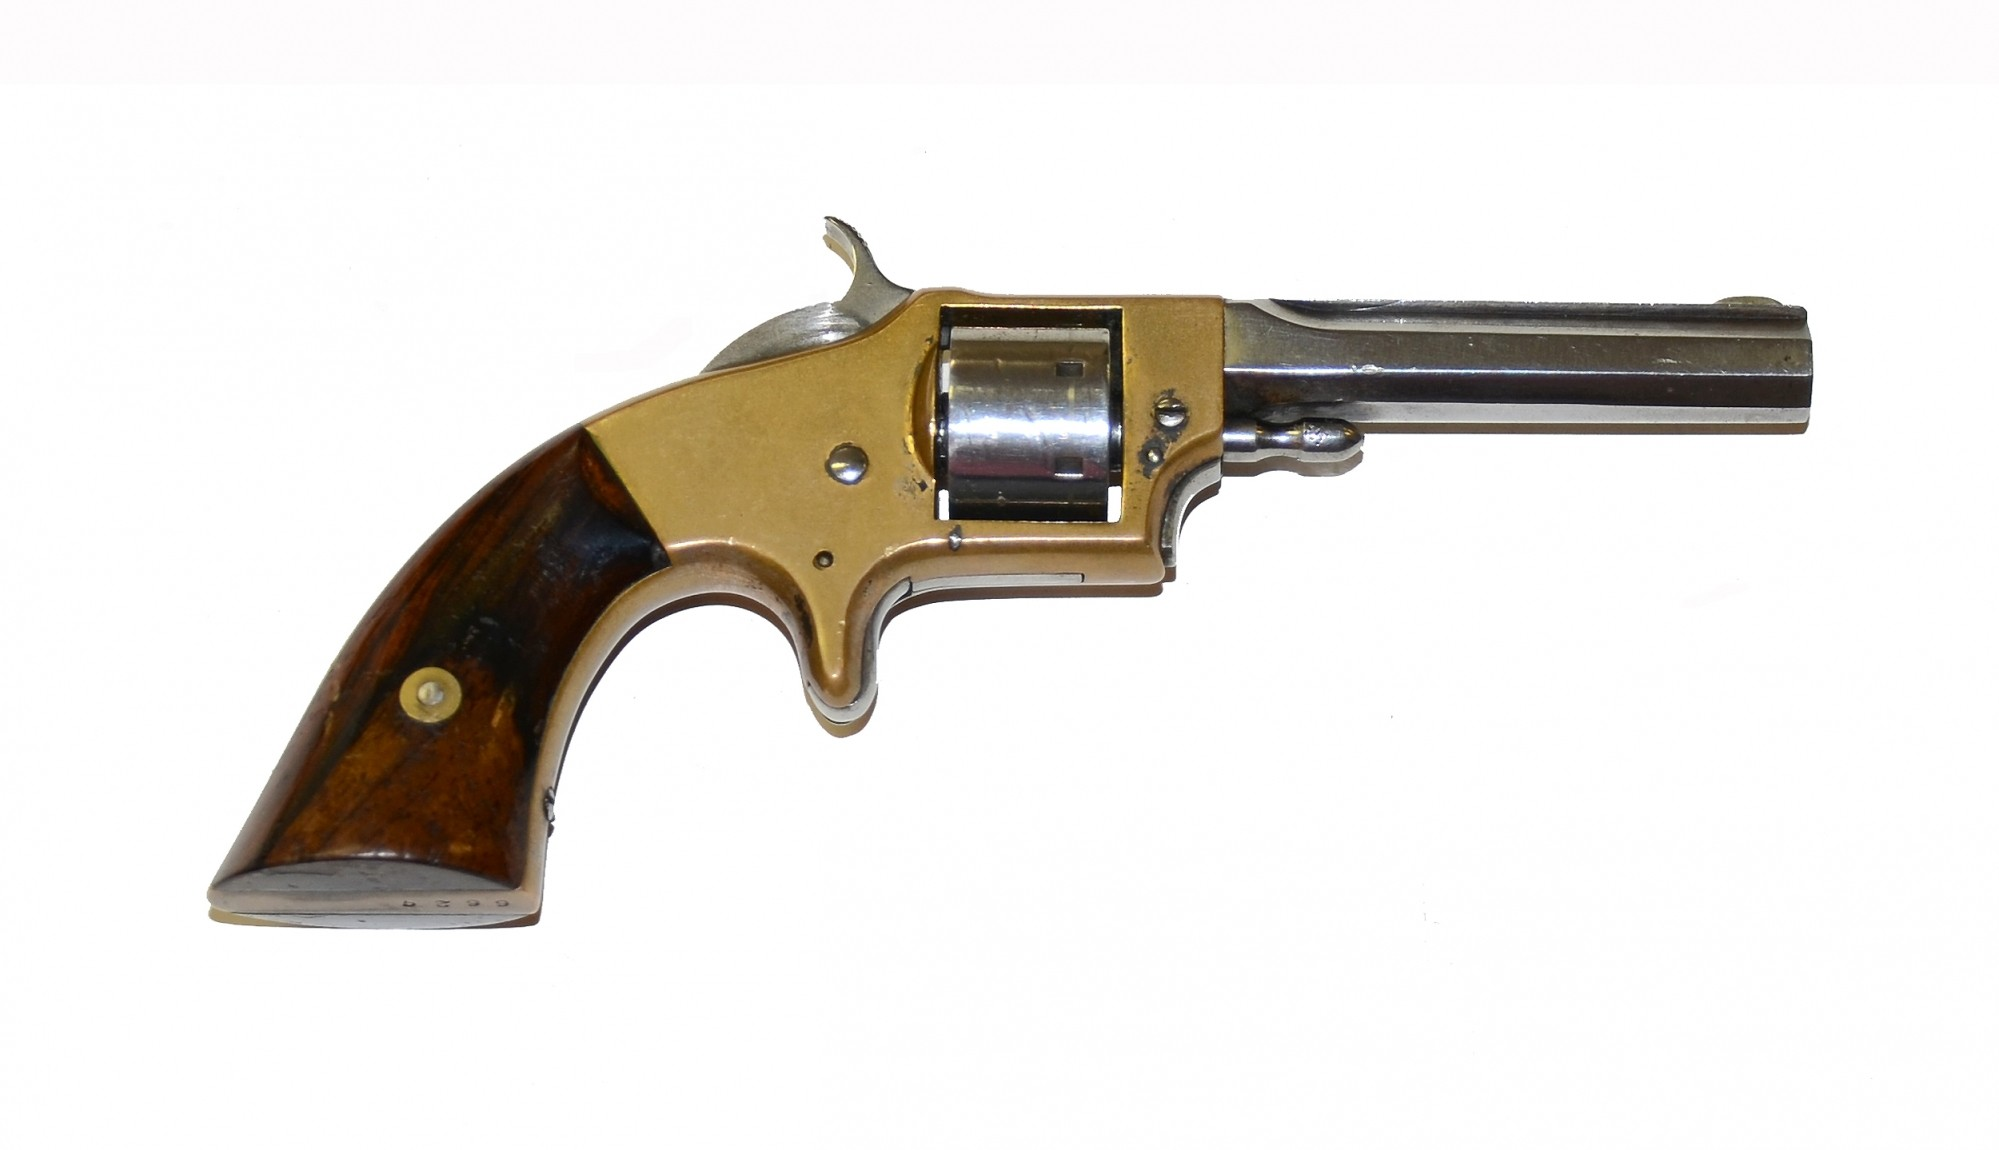 A Solid Rollin White Made Smith Amp Wesson Model Pocket